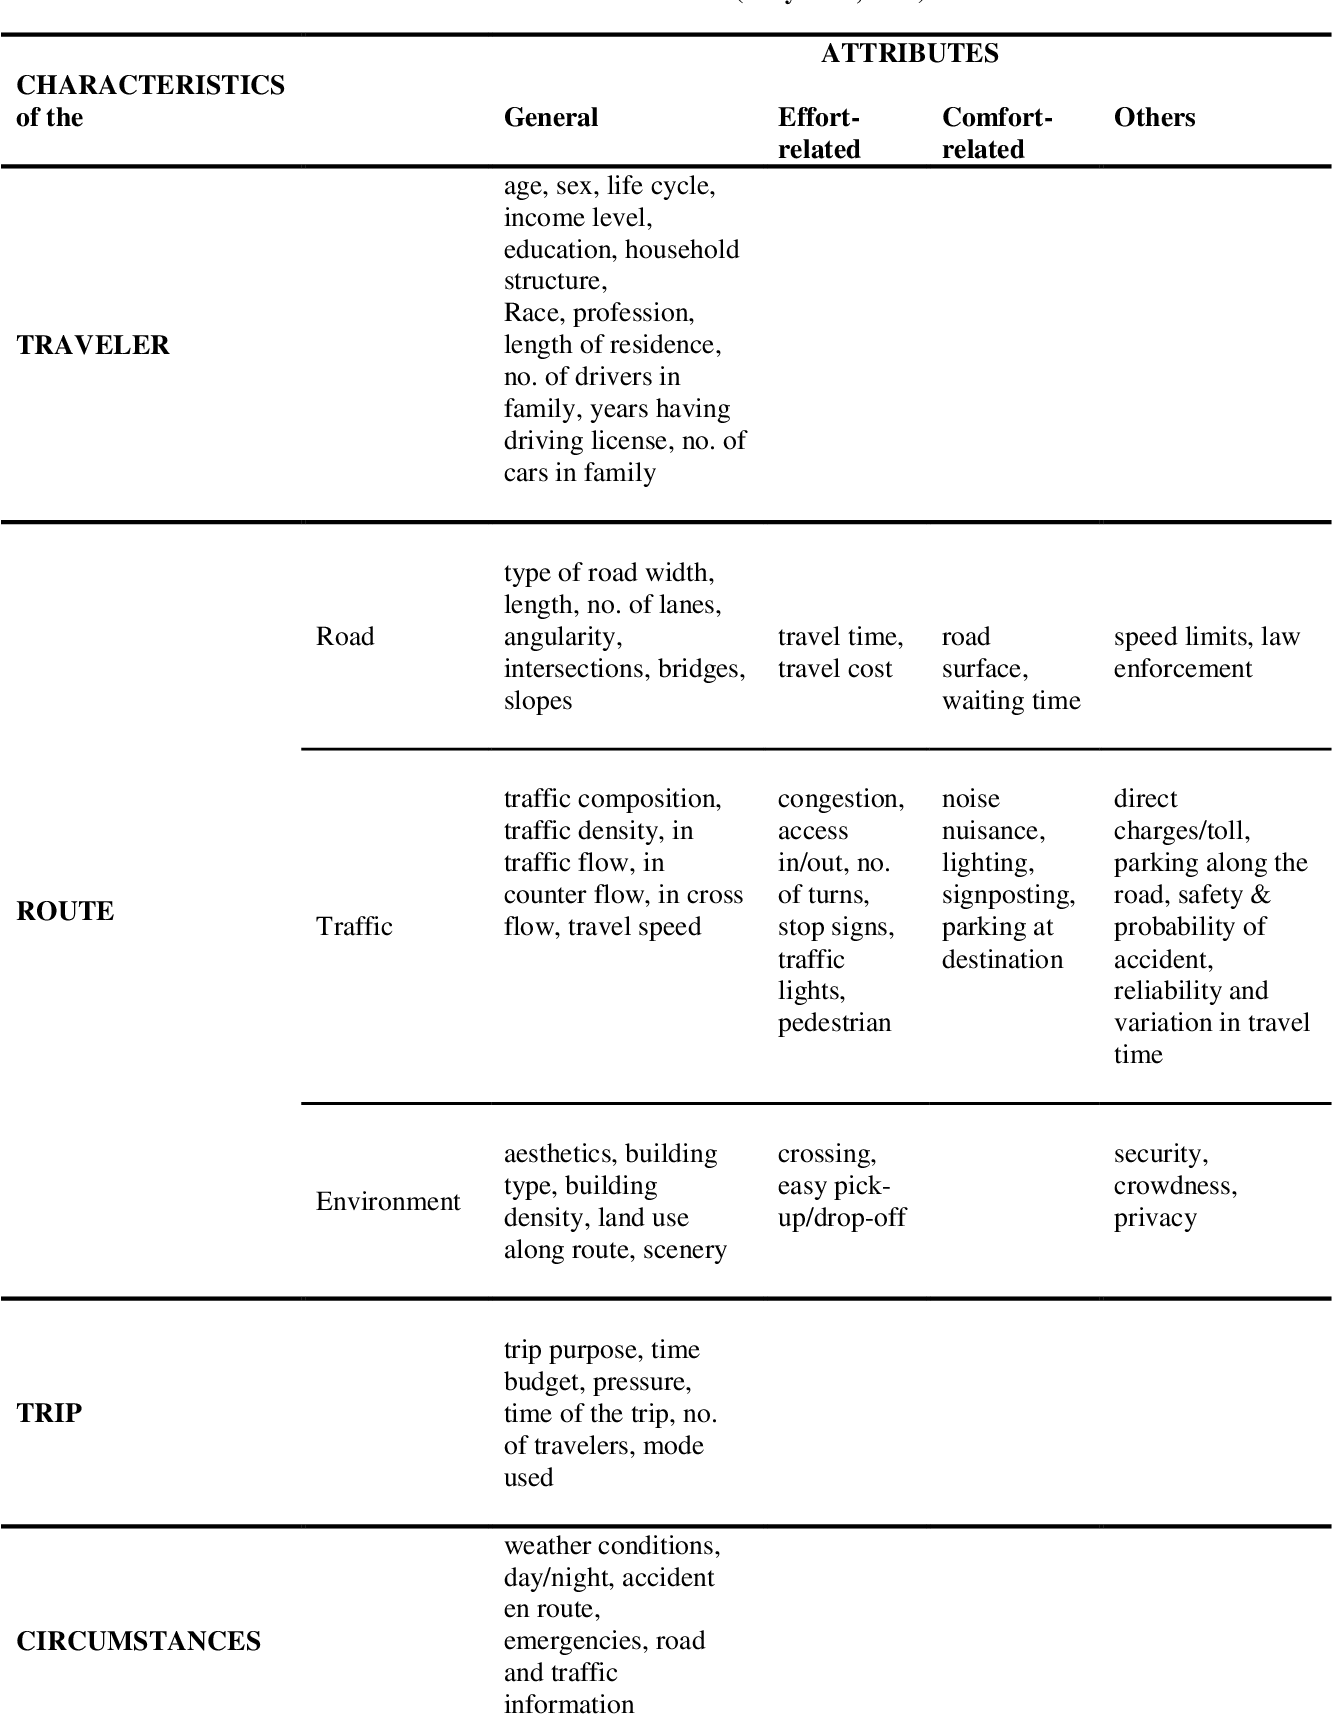 Table 2-1 from Development of a Cyclists' Route-Choice Model